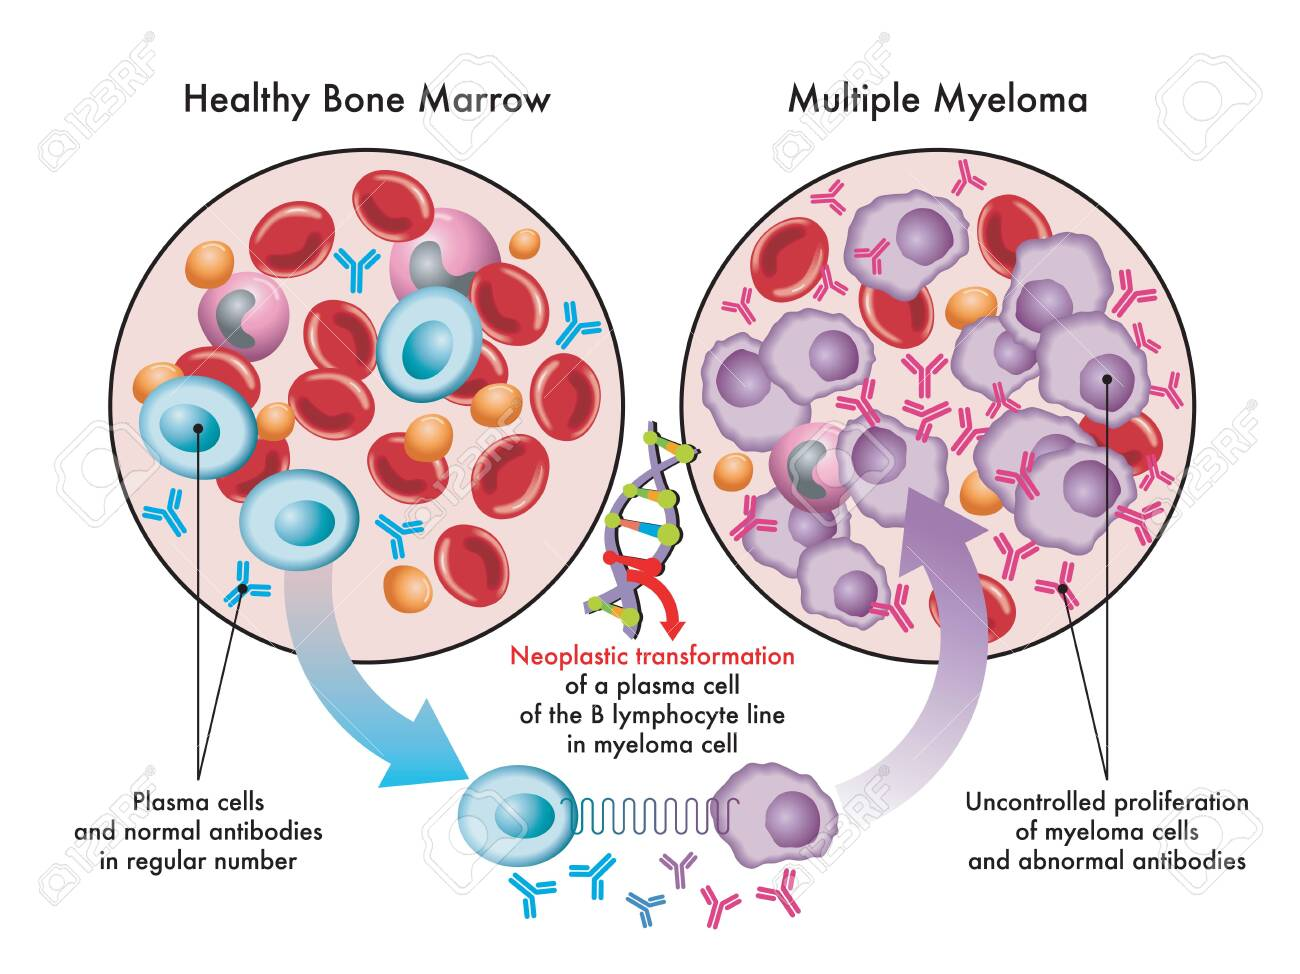 Medical illustration shows the transformation of plasma cells in healthy bone marrow into myeloma cells in multiple myeloma, due to DNA damage. - 156347099